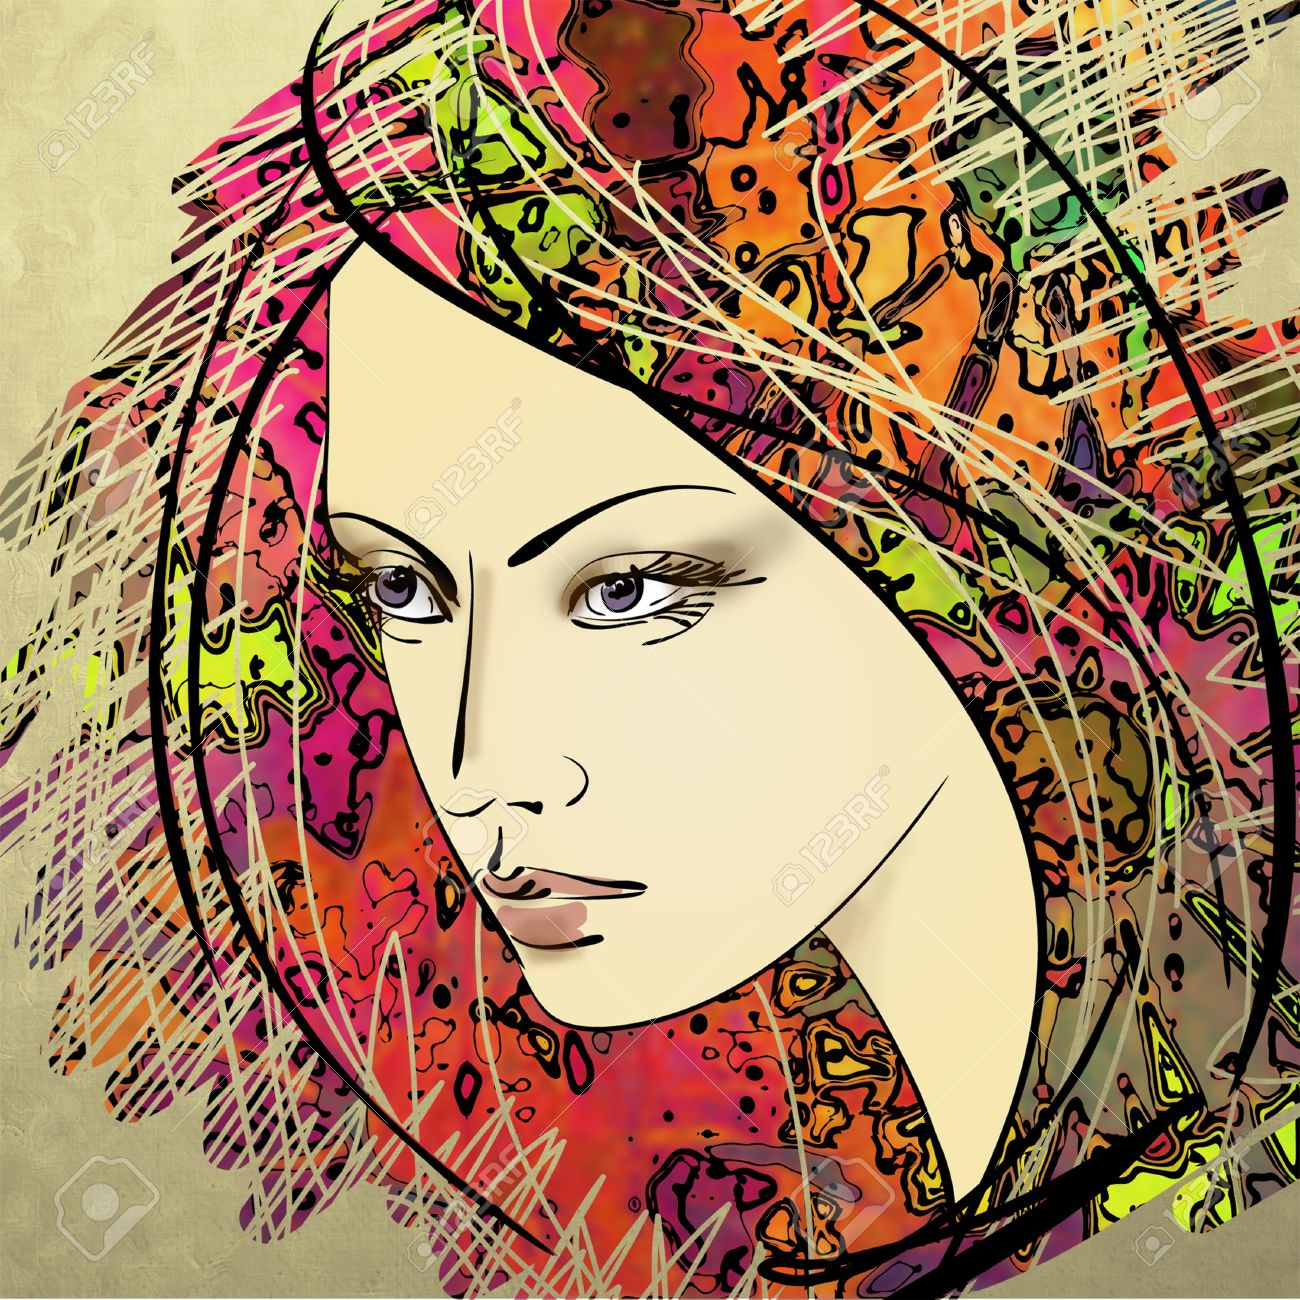 art colorful sketching beautiful girl face on sepia background Stock Photo - 17395369